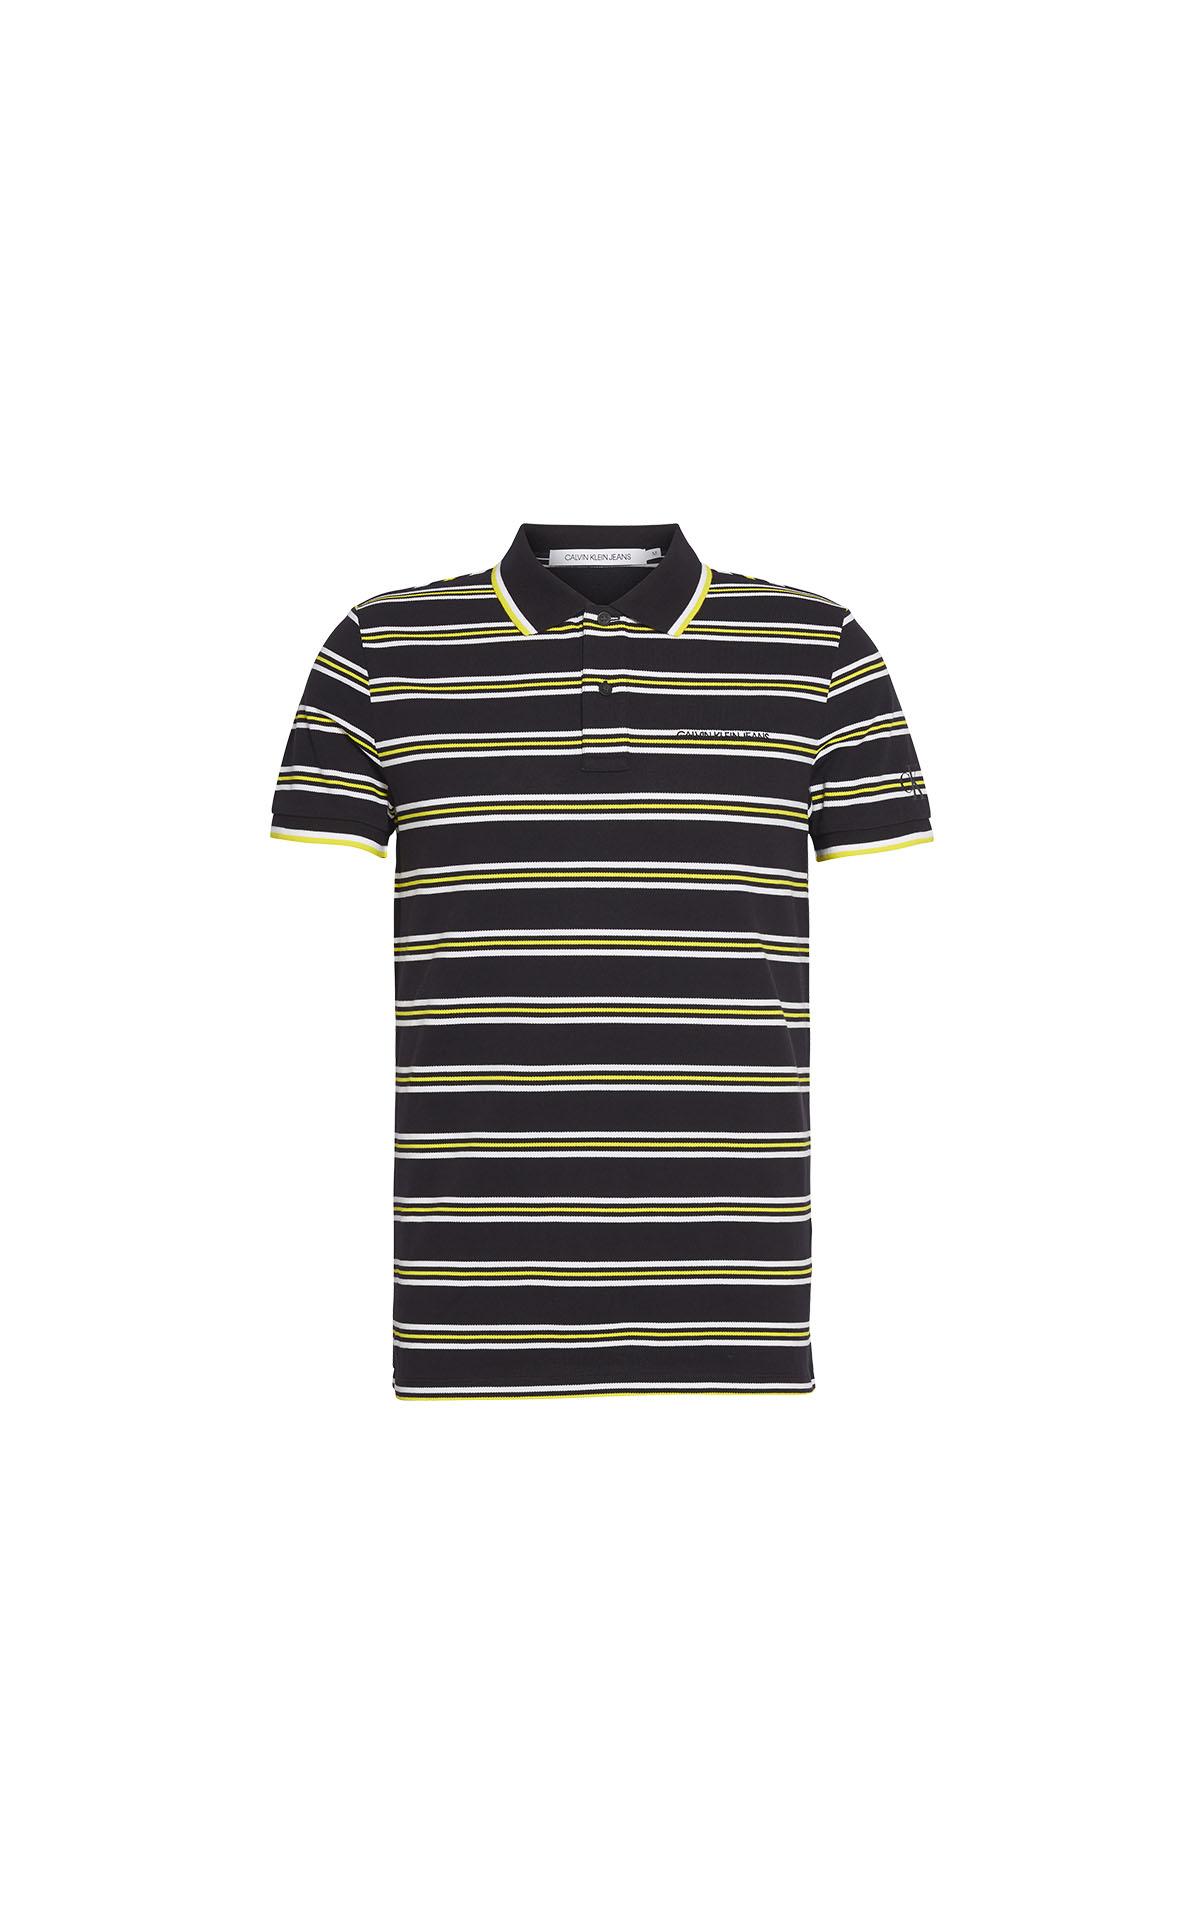 Calvin Klein Mens EO/Instit Strip Polo at the Bicester Village Shopping Collection